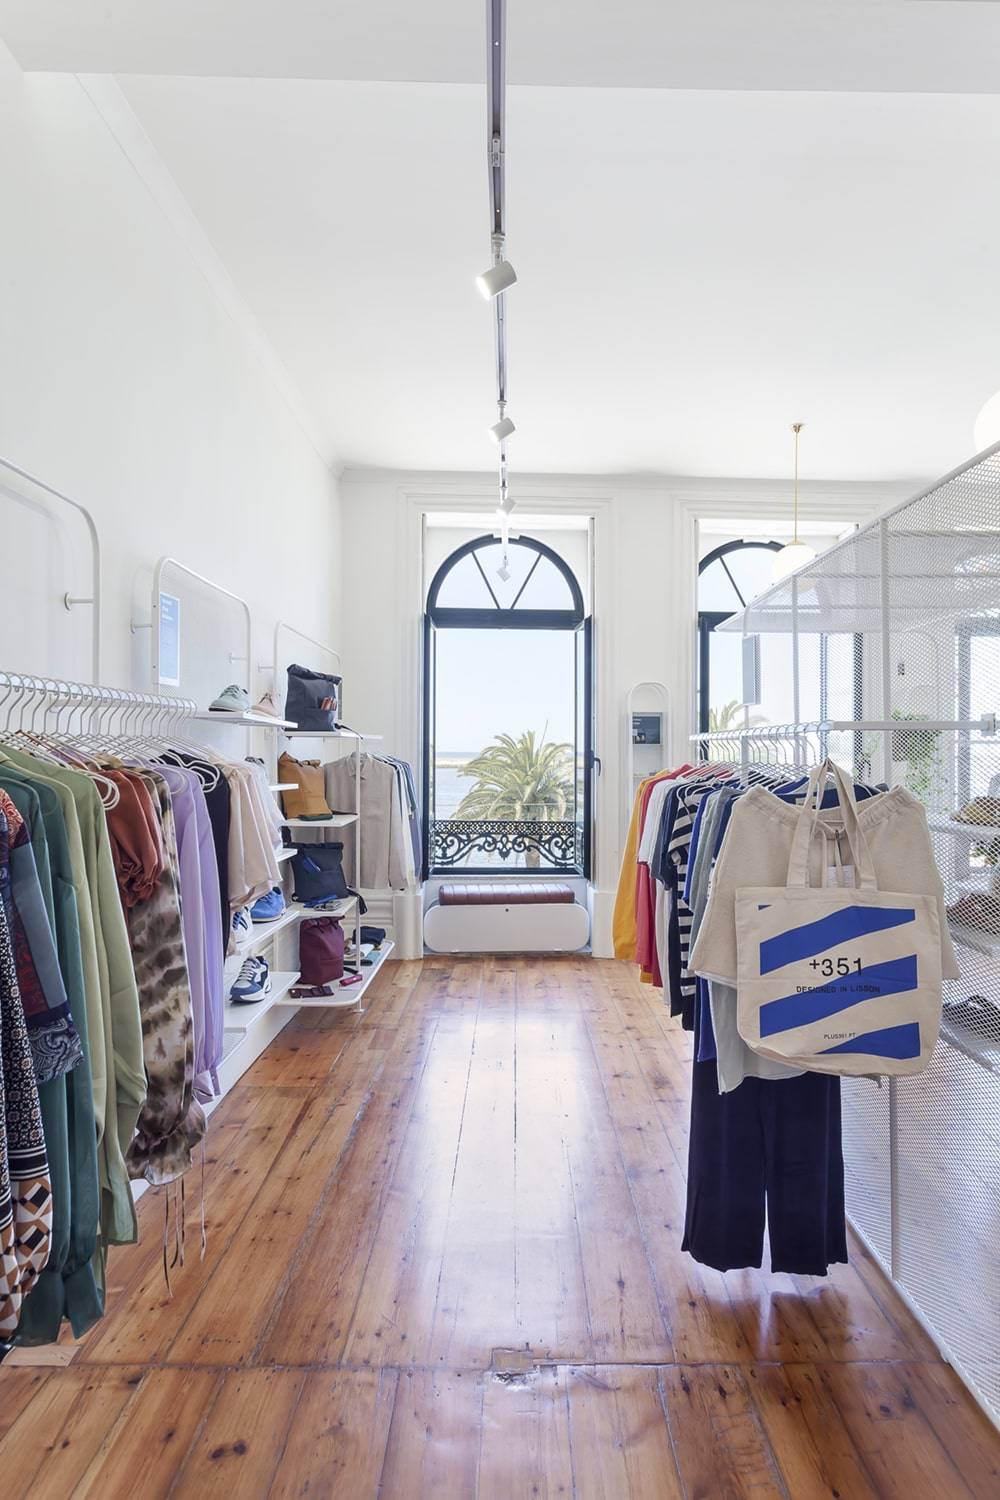 Discover local fashion brands and designers in Porto at The Feeting Room in Foz do Douro.